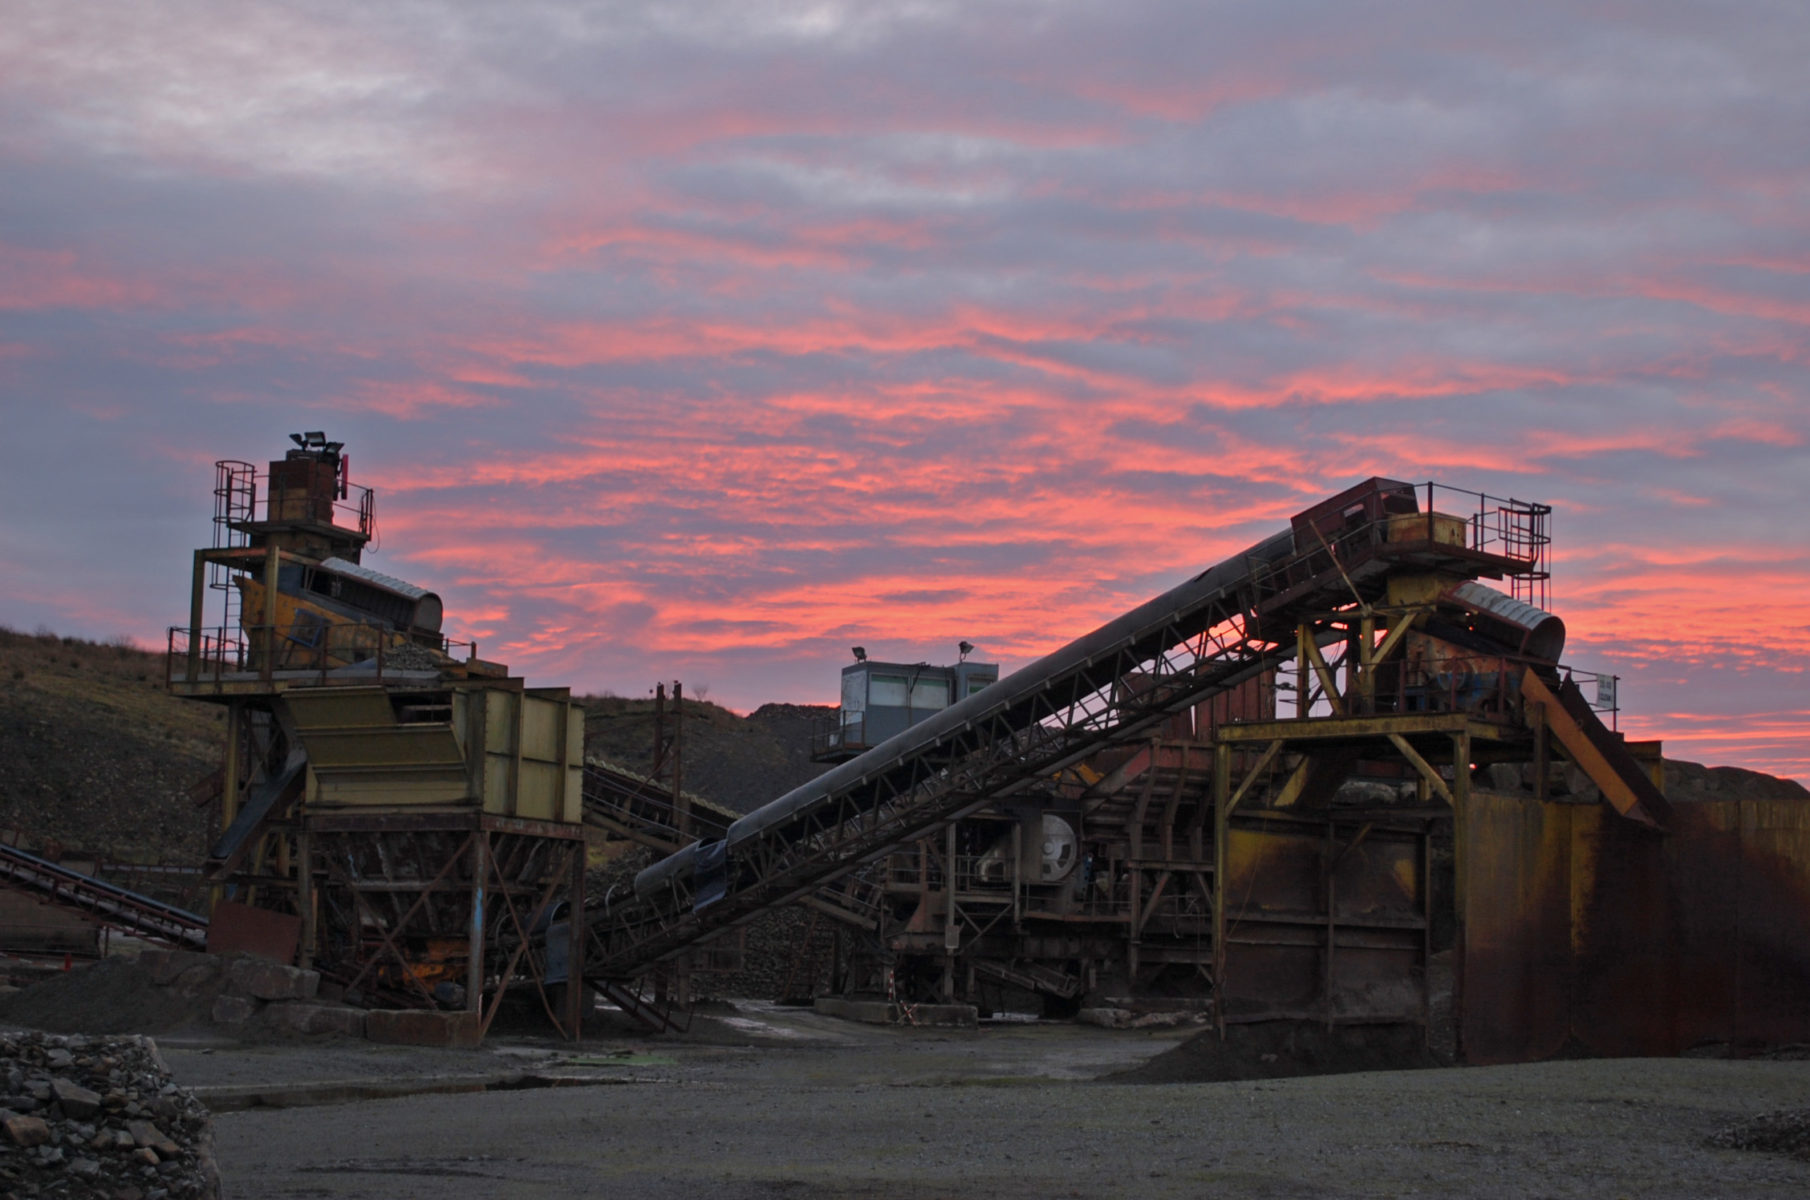 Rare Earth Stocks Take Off on Production Cuts, Rising Demand, Fears of Export Controls